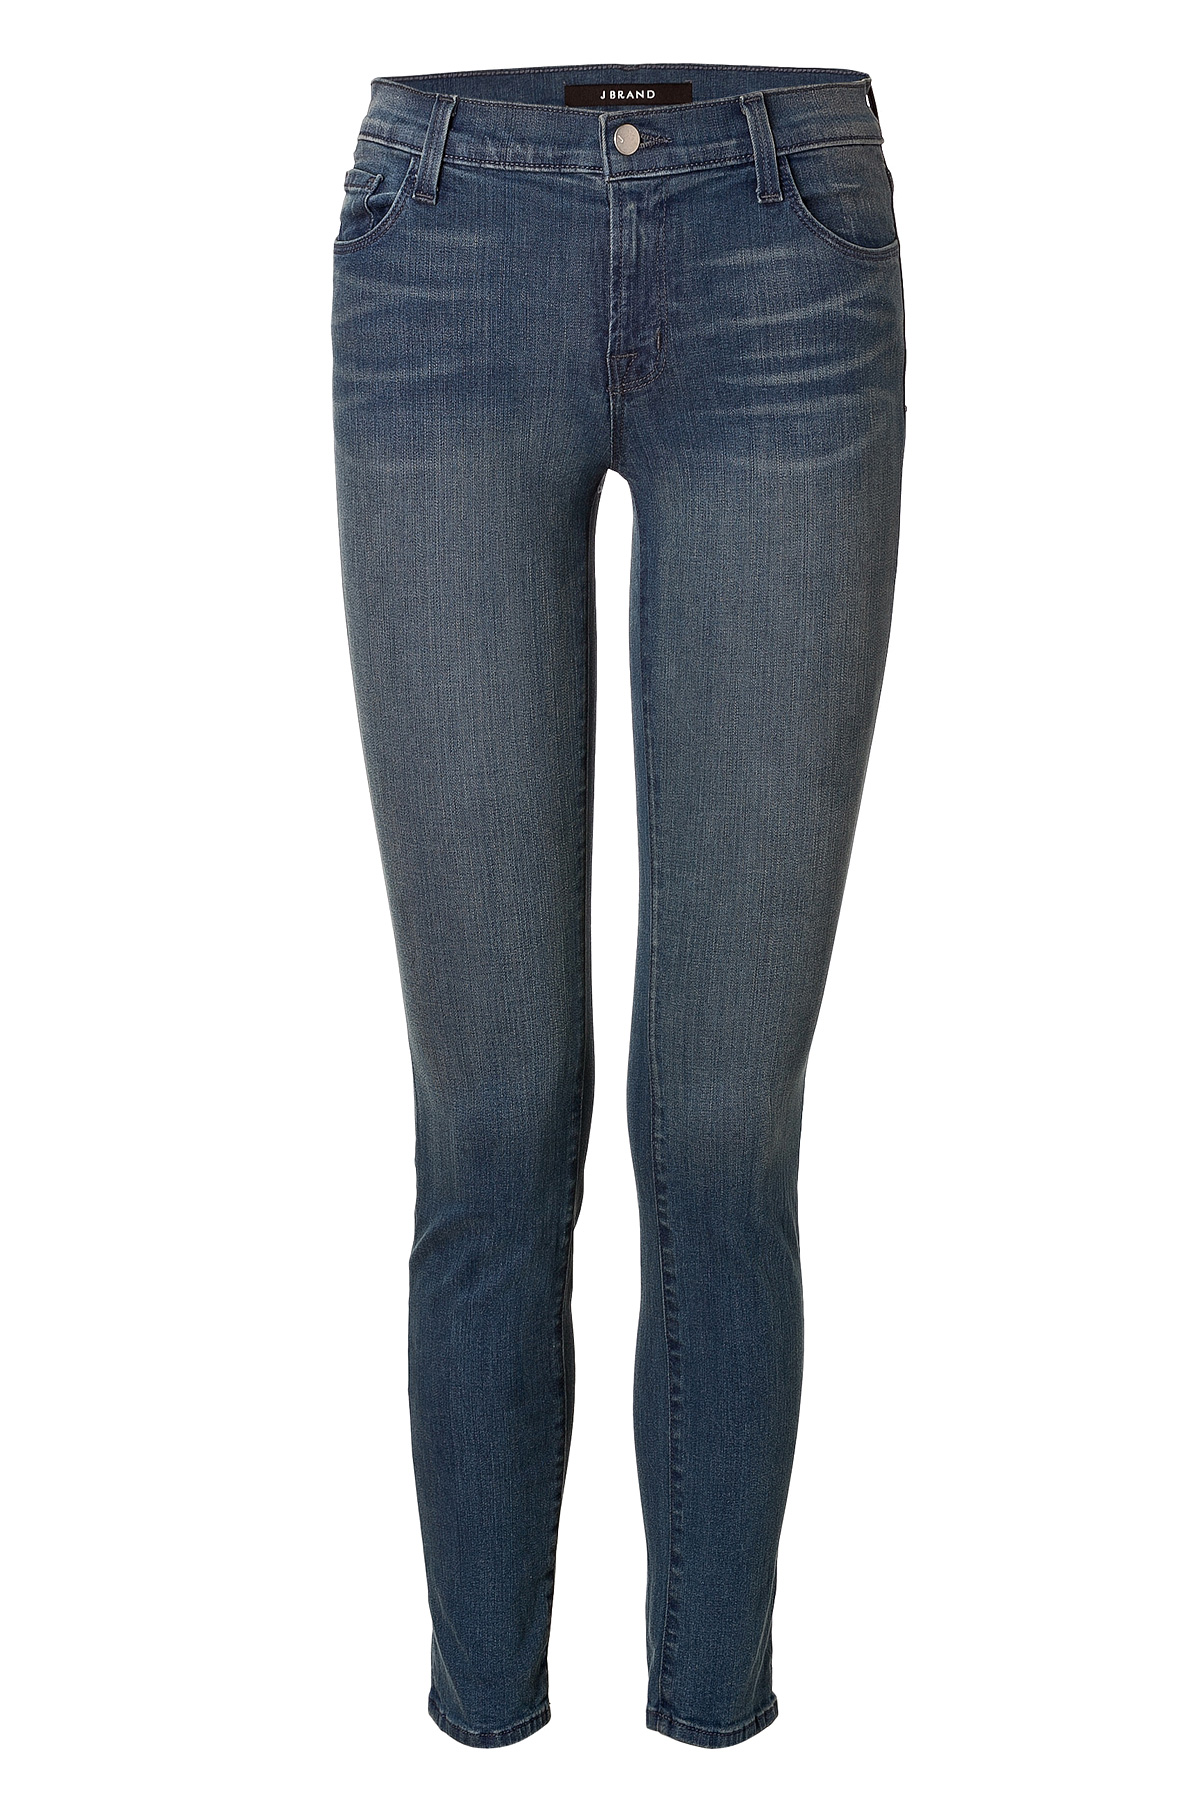 j brand mid rise skinny jeans in utopia in blue lyst. Black Bedroom Furniture Sets. Home Design Ideas